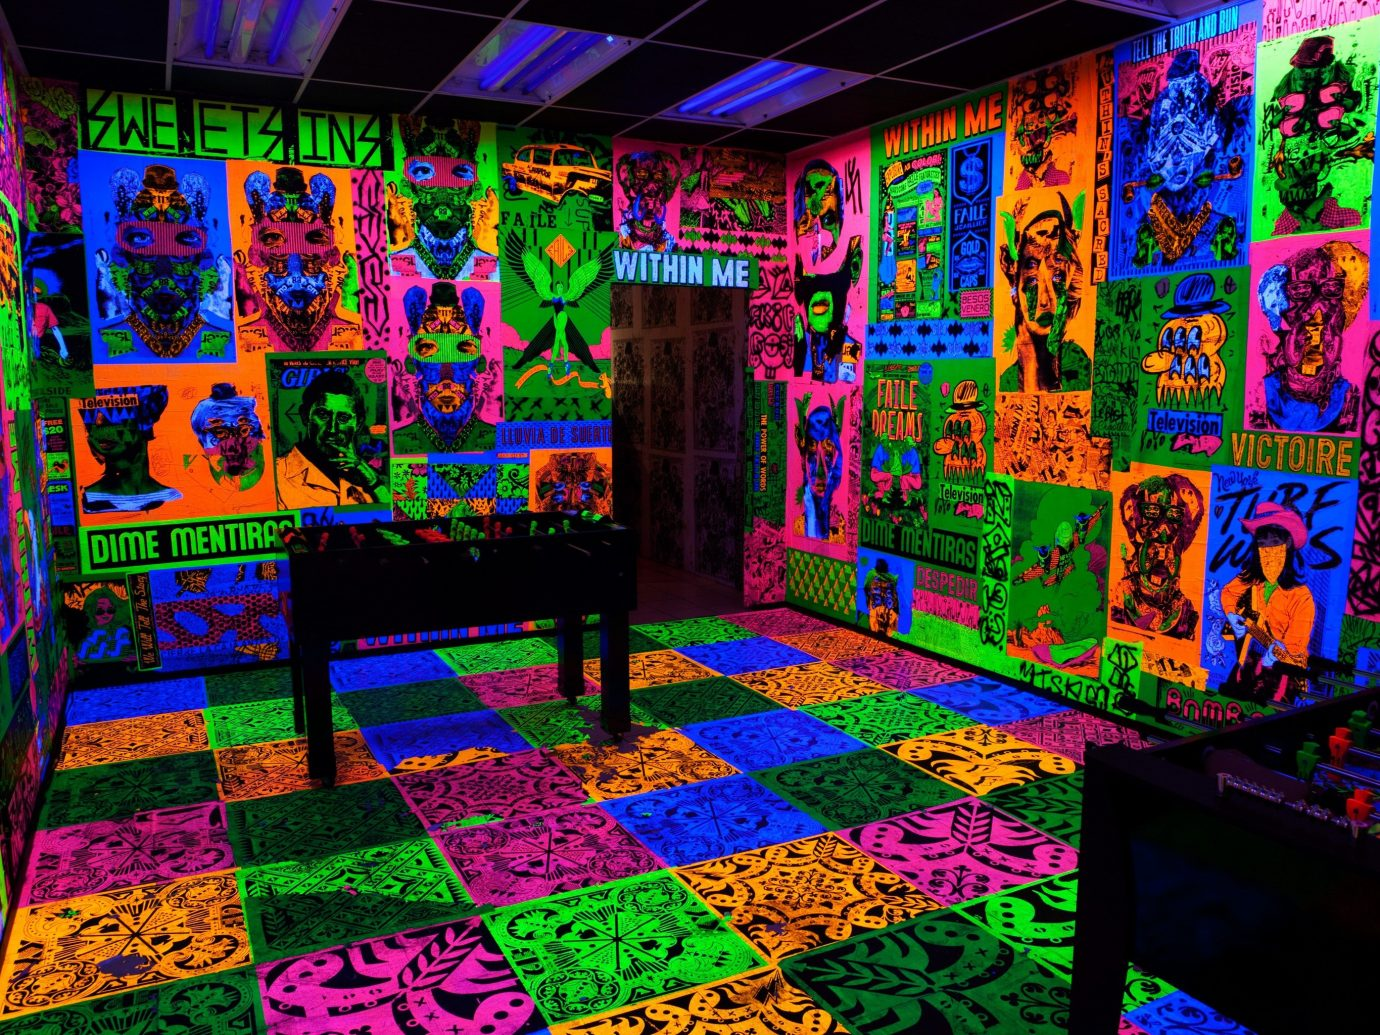 Arts + Culture colorful indoor graffiti covered art colored psychedelic art painted decorated colors